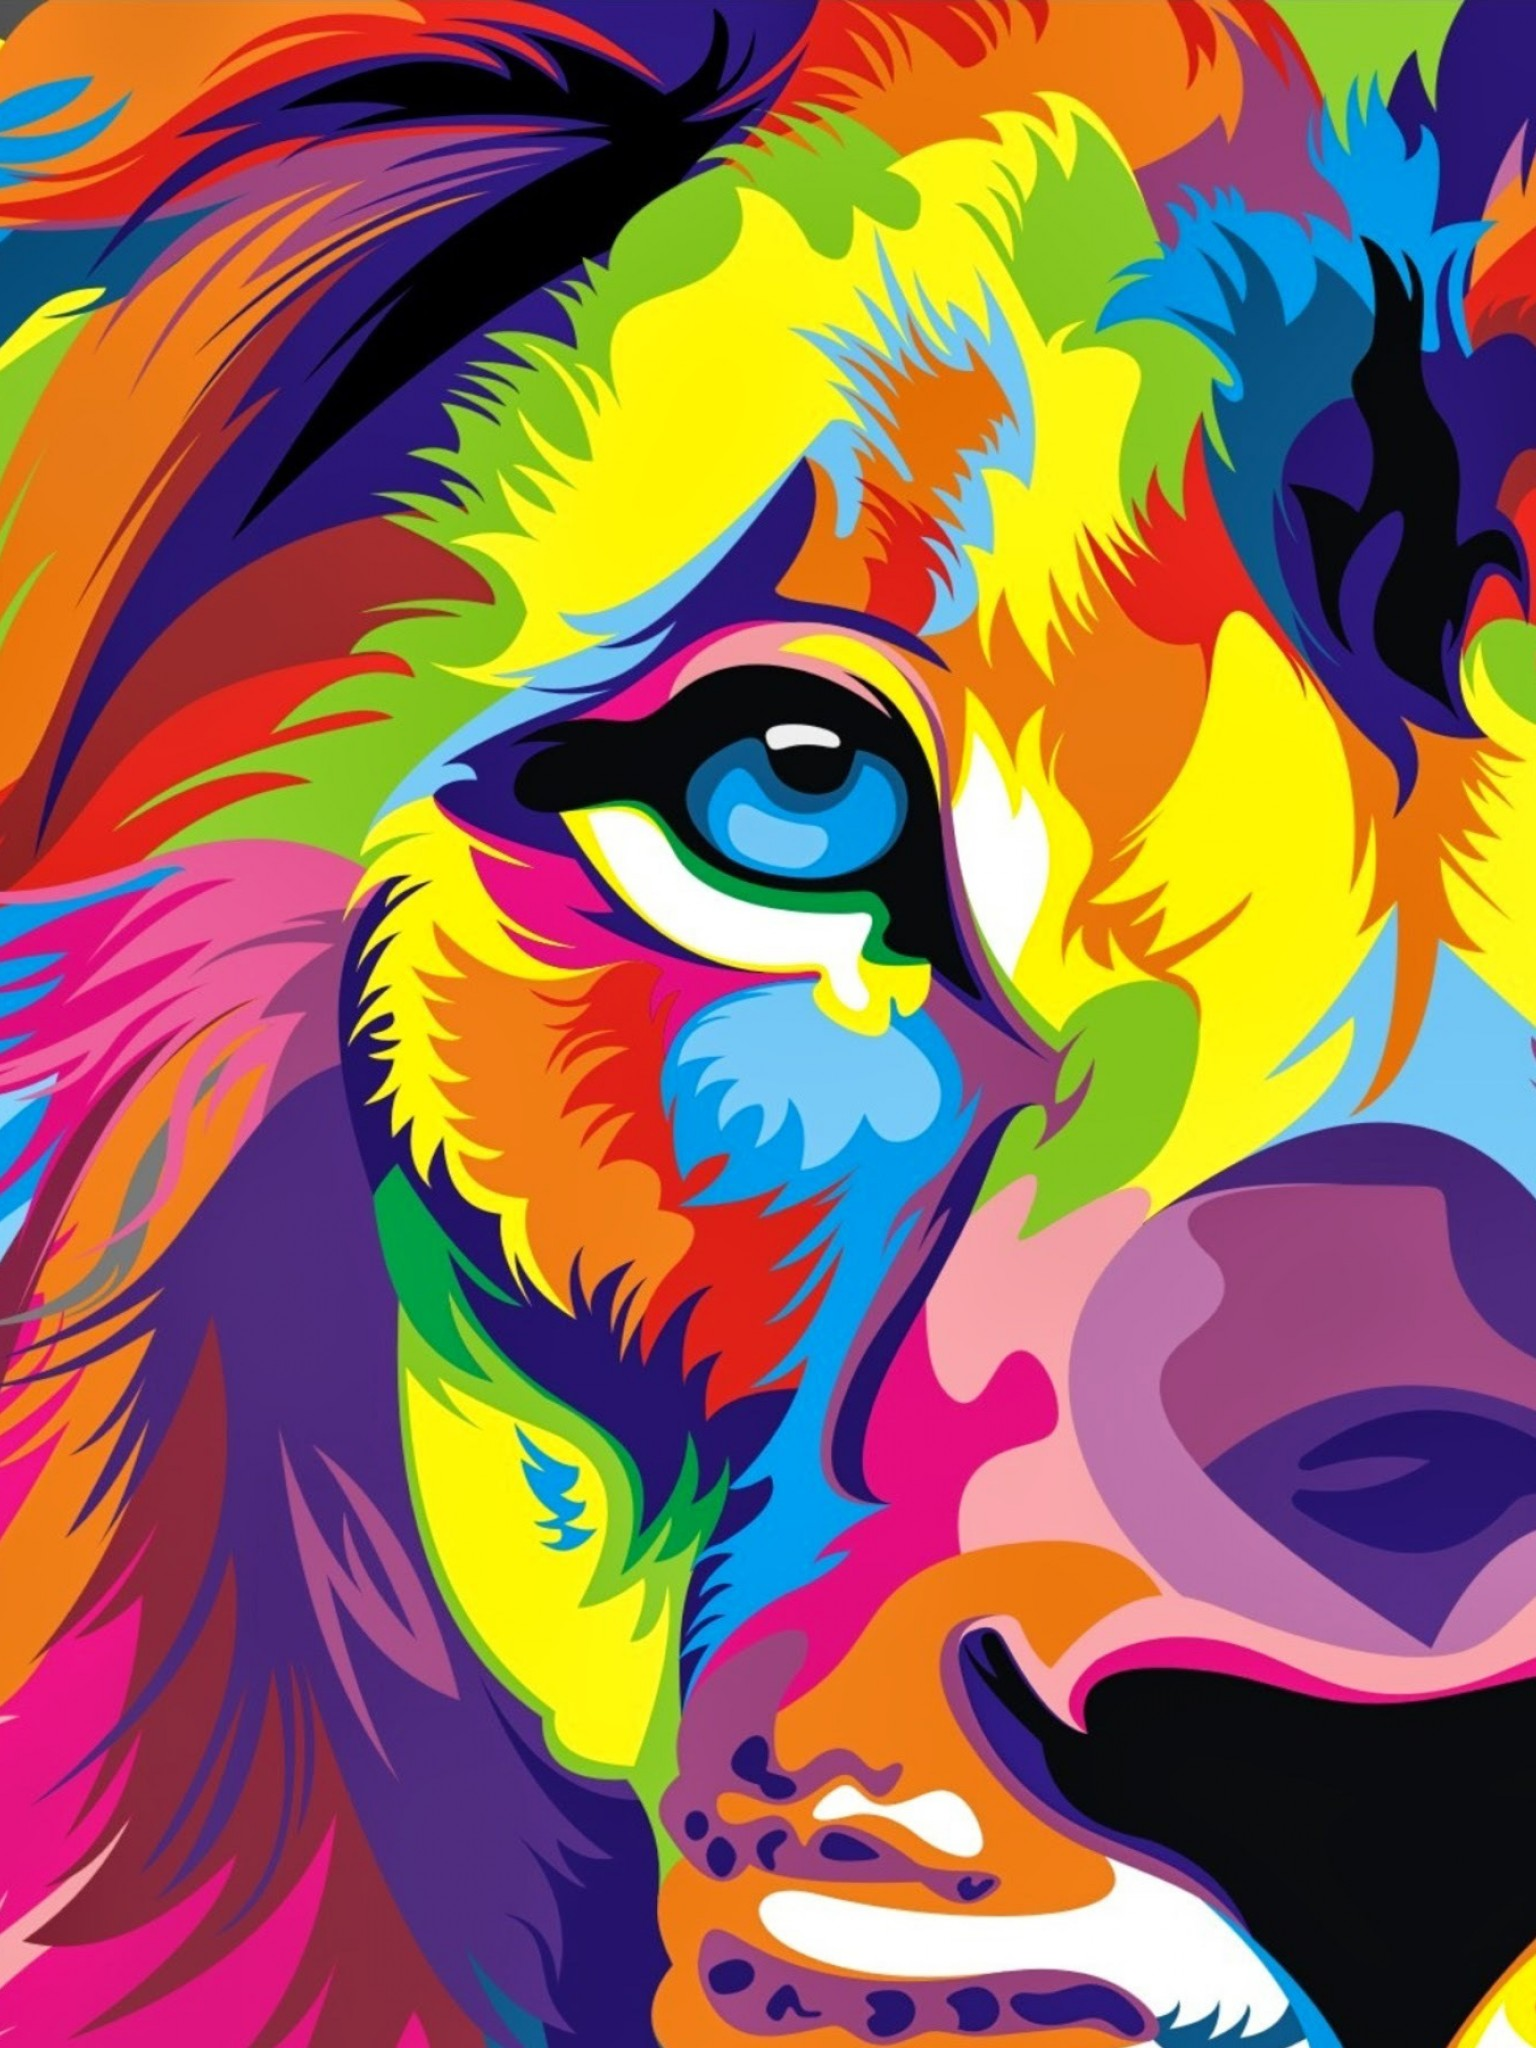 download full hd colourful lion artwork wallpaper retina